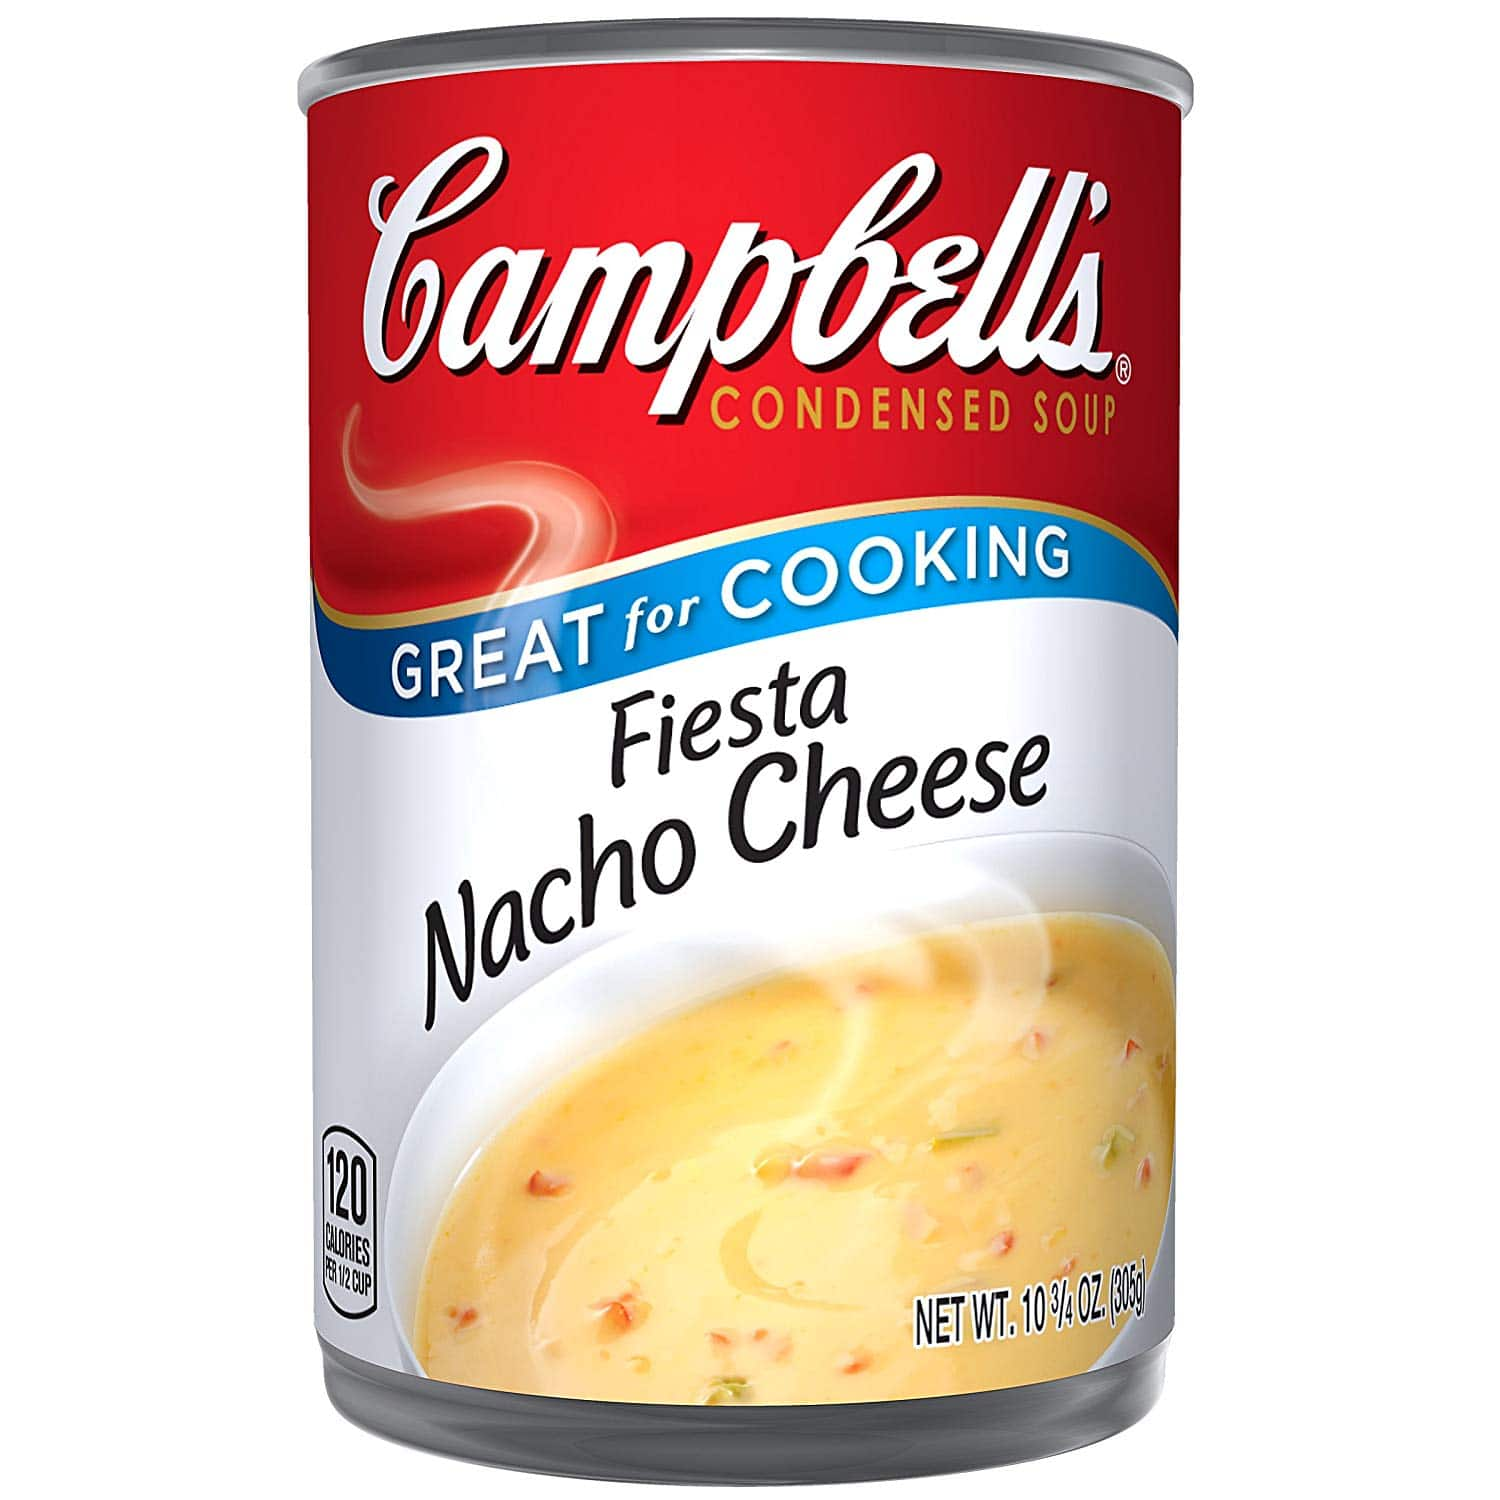 12-Pack 10.75oz Condensed Fiesta Nacho Cheese Soup $7.56 w/ S&S + Free S&H